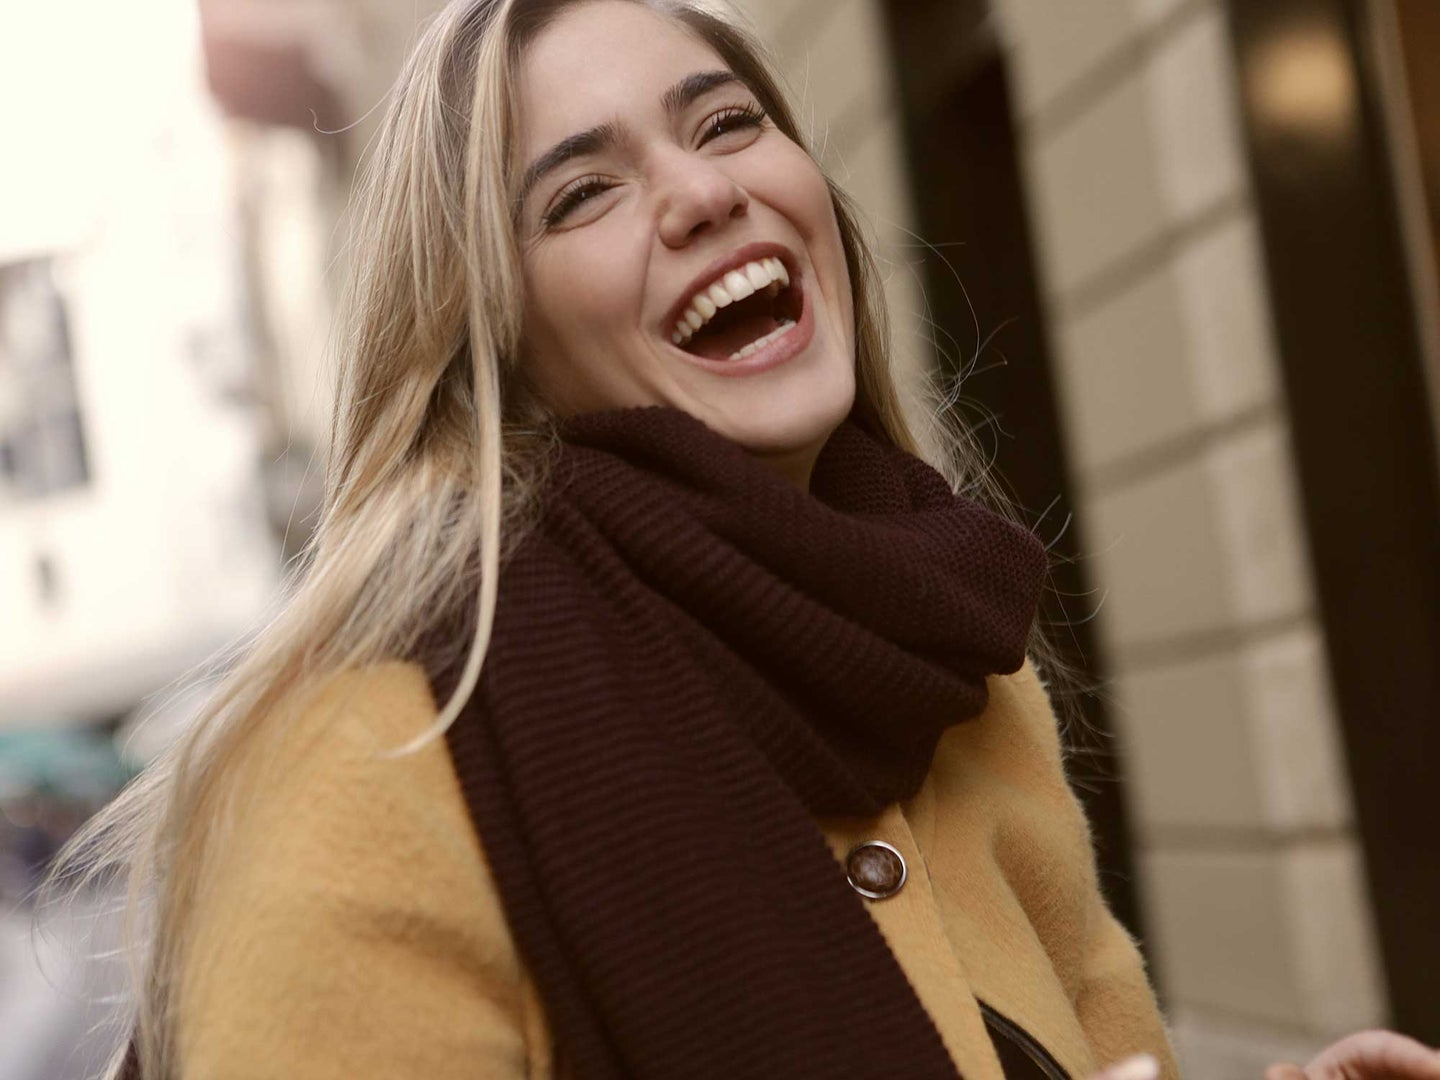 Woman with yellow jacket and black scarf smiling with all her teeth out.